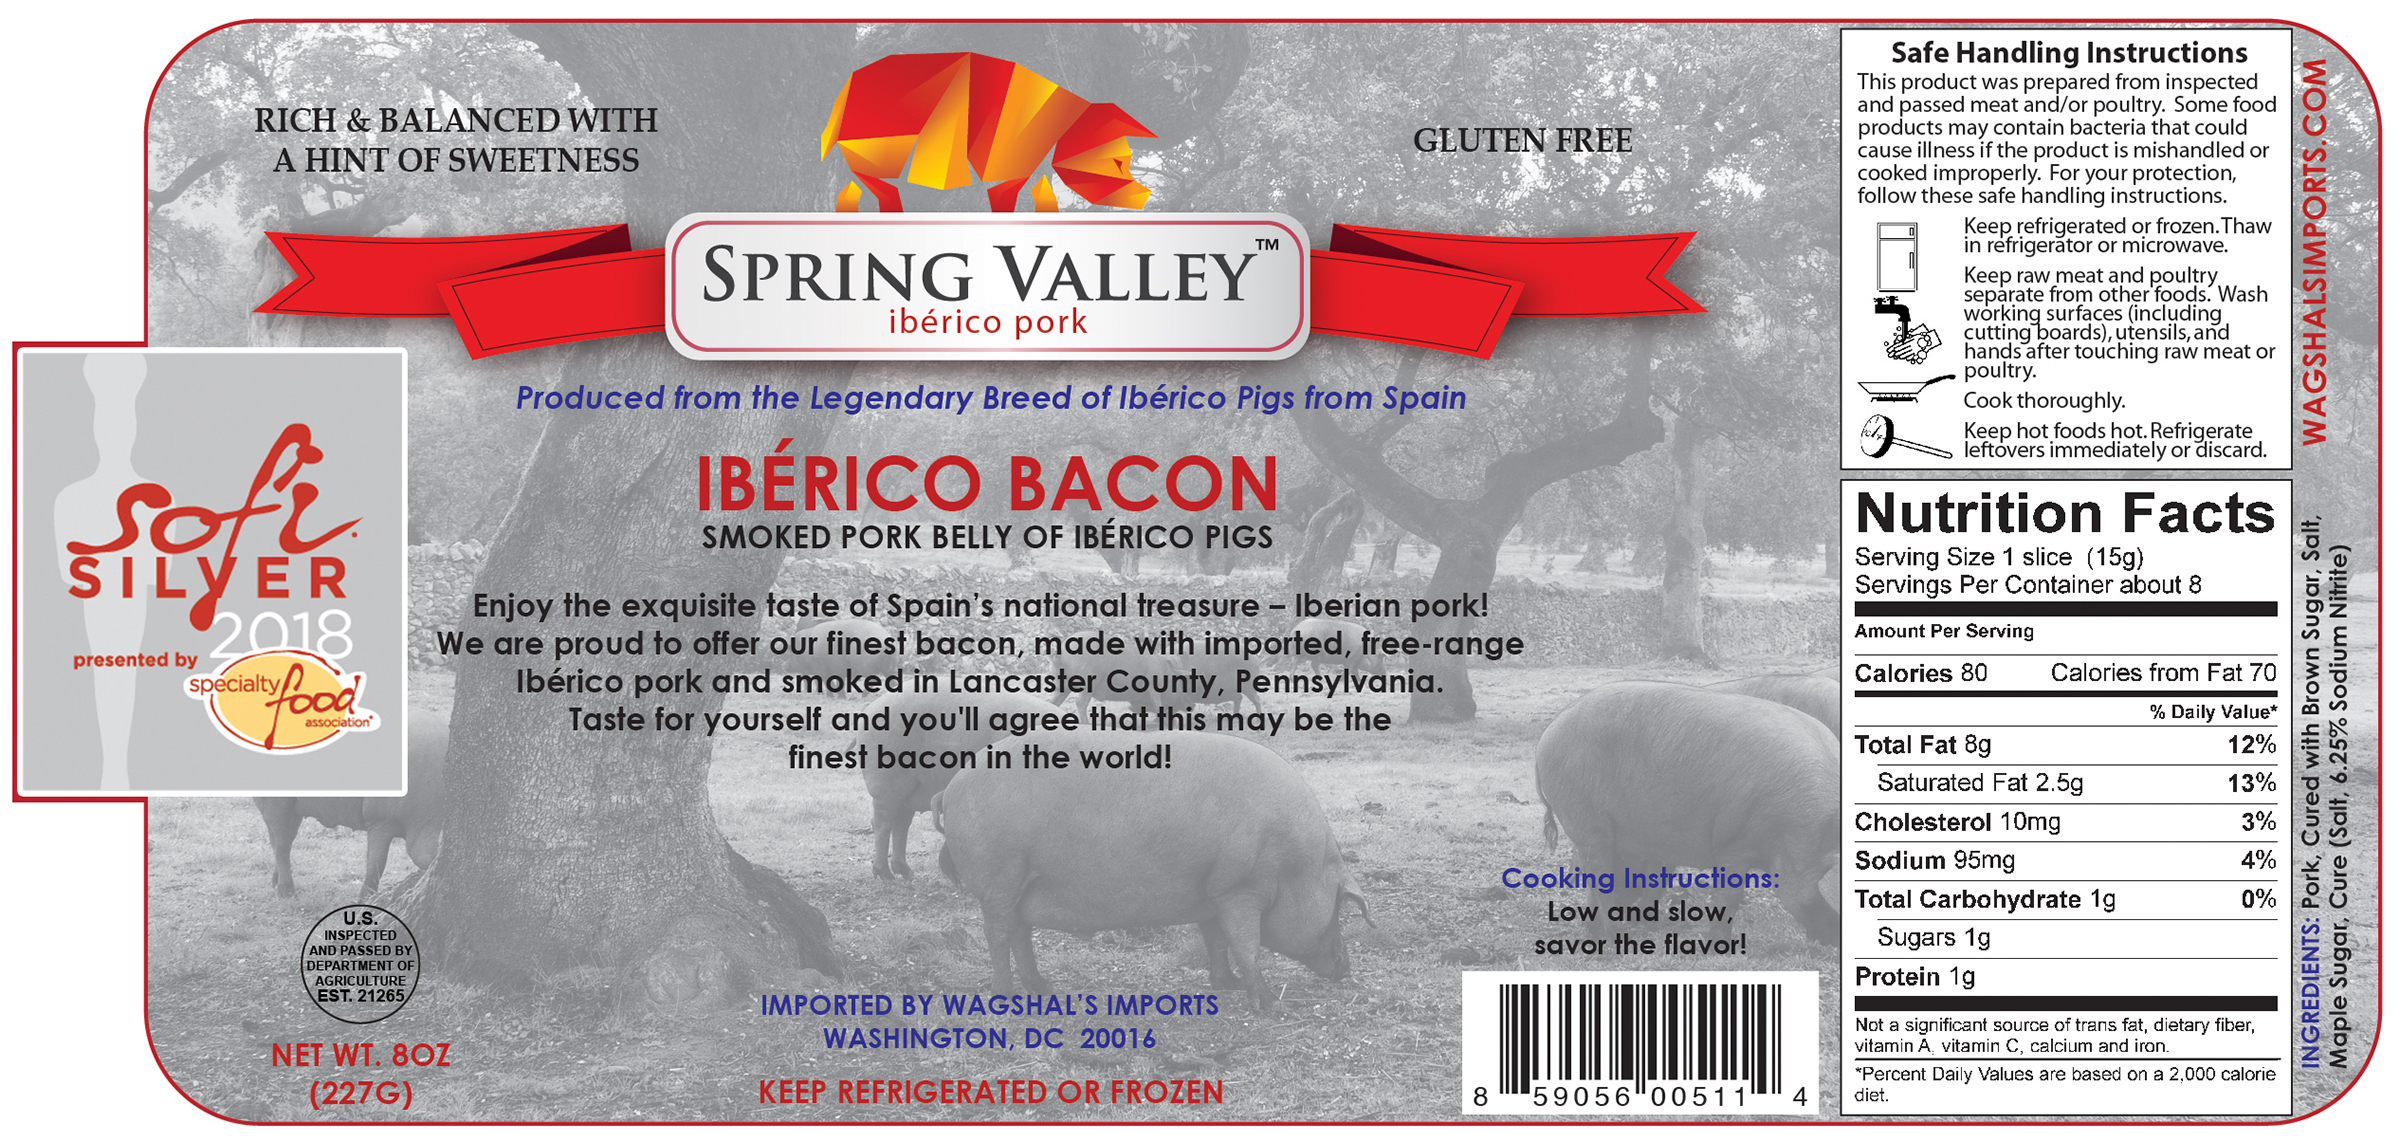 2018-04-29 Spring Valley Iberico Bacon  Label copy.jpg